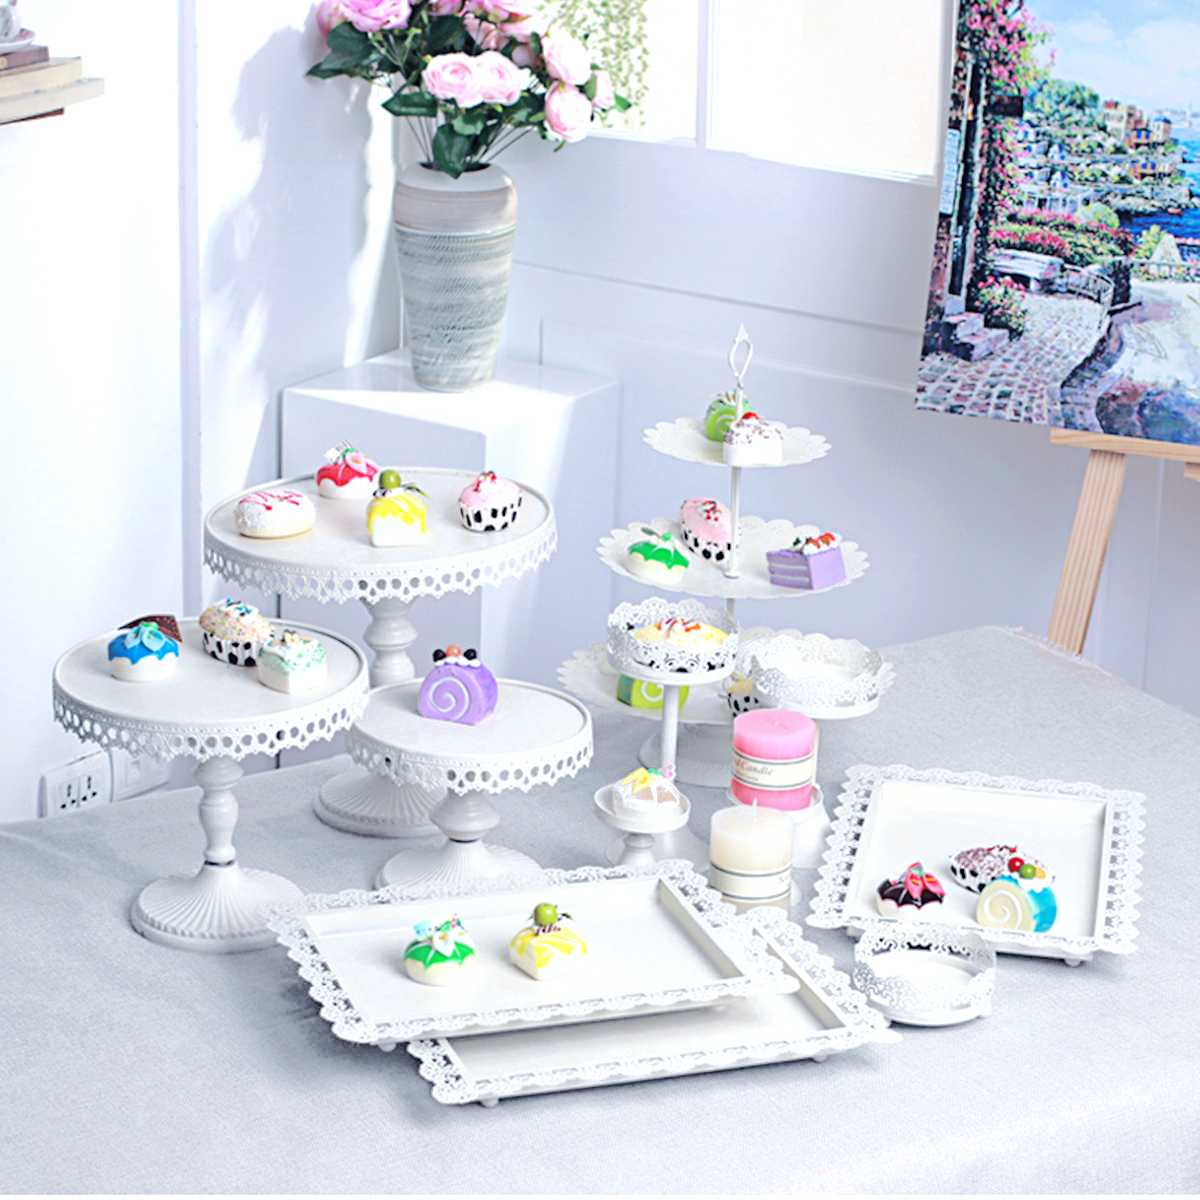 Wedding Decoration 12Pcs/Lot White Iron Cake Stands Party Cupcake Dessert Display Holder Plate Birthday Gifts Cake Tools Set